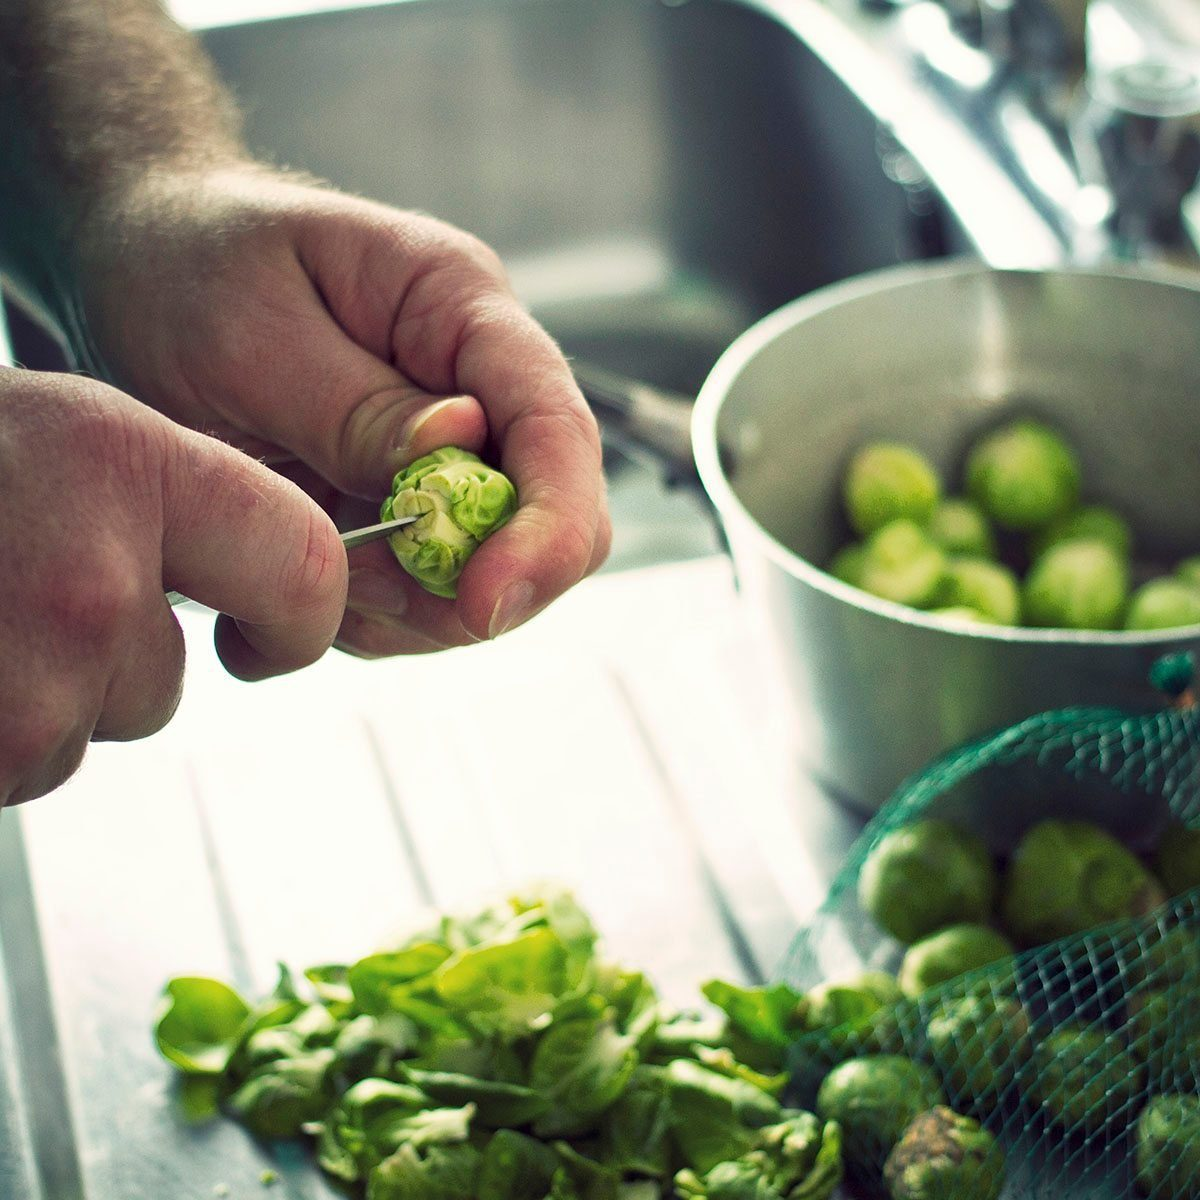 Brussels Sprouts being prepared at a kitchen sink in readiness for Christmas Dinner